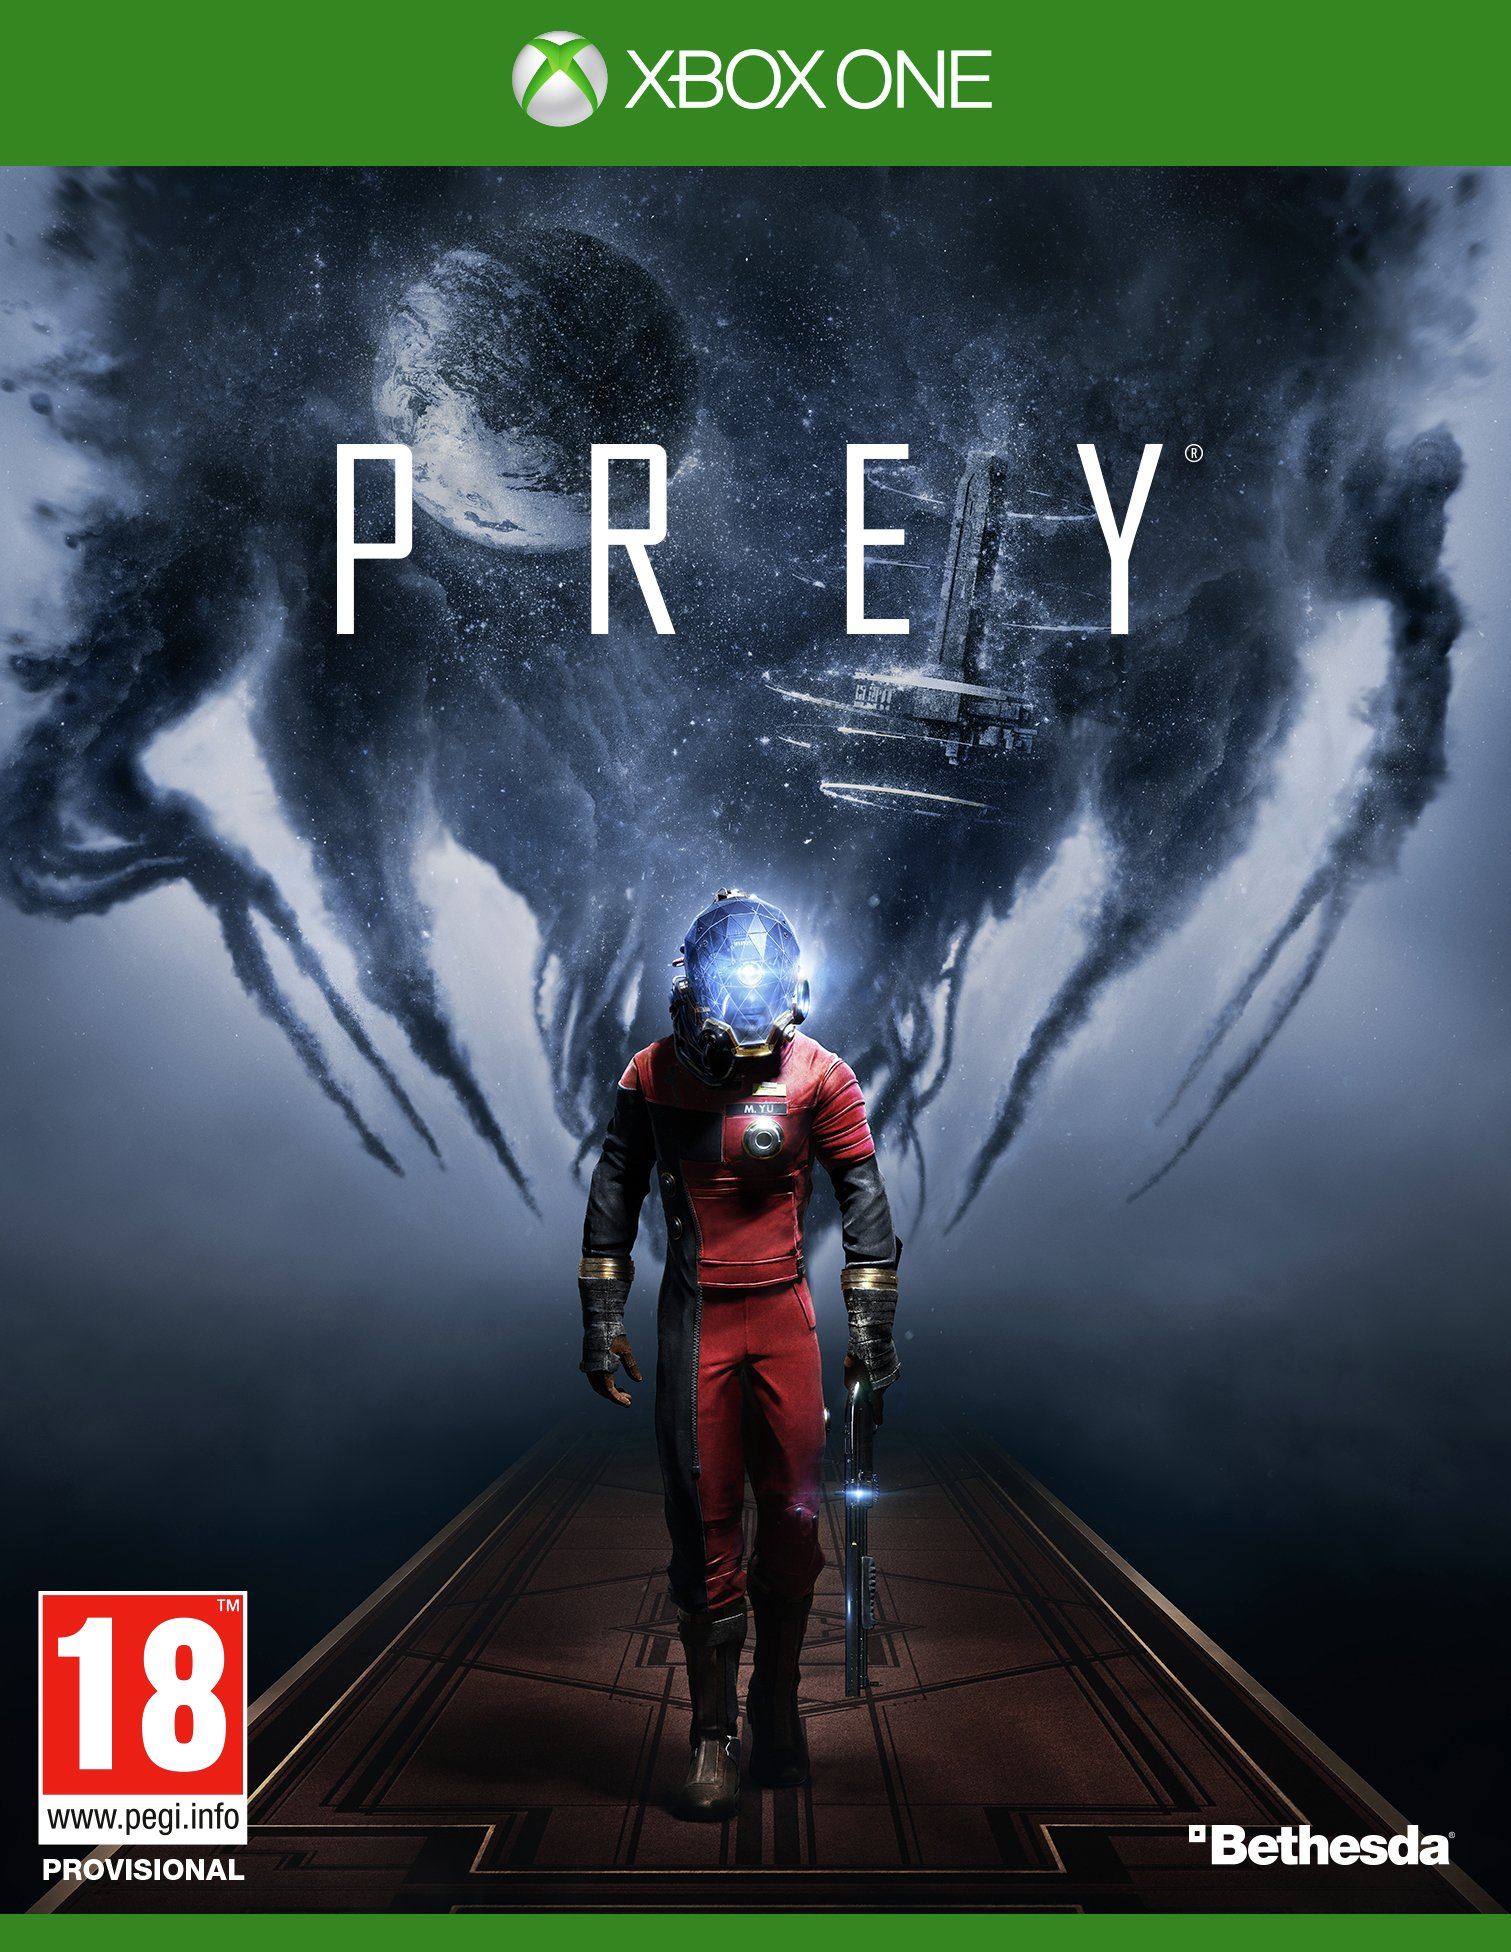 image for Prey Xbox One Game